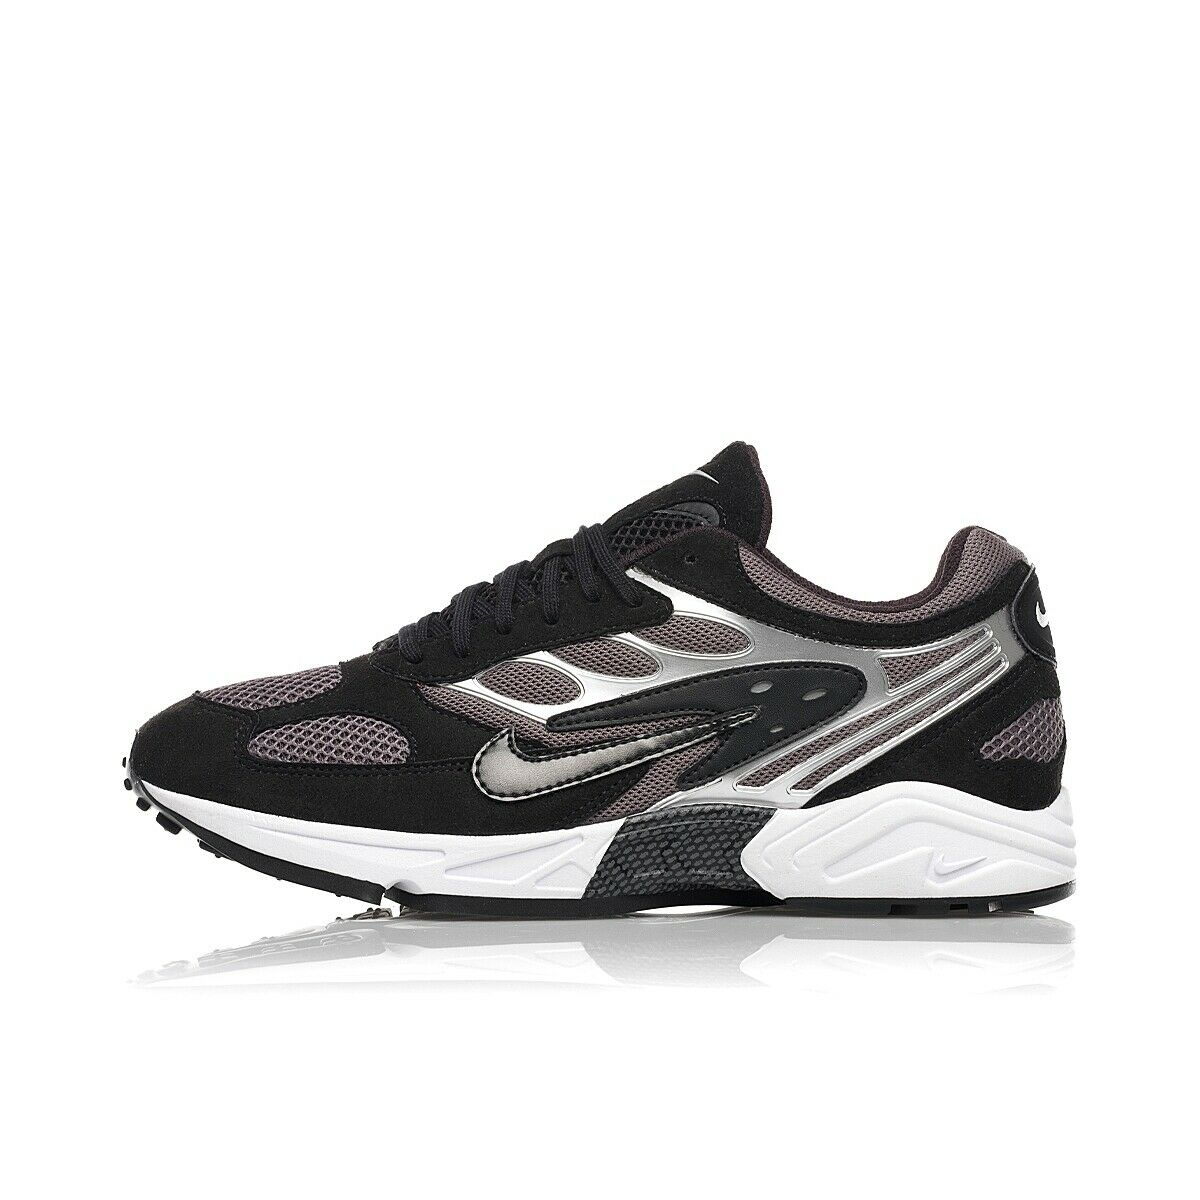 NIKE AIR GHOST RACER AT5410-002 retro running black 1 95 98 97 90 97 55 limited